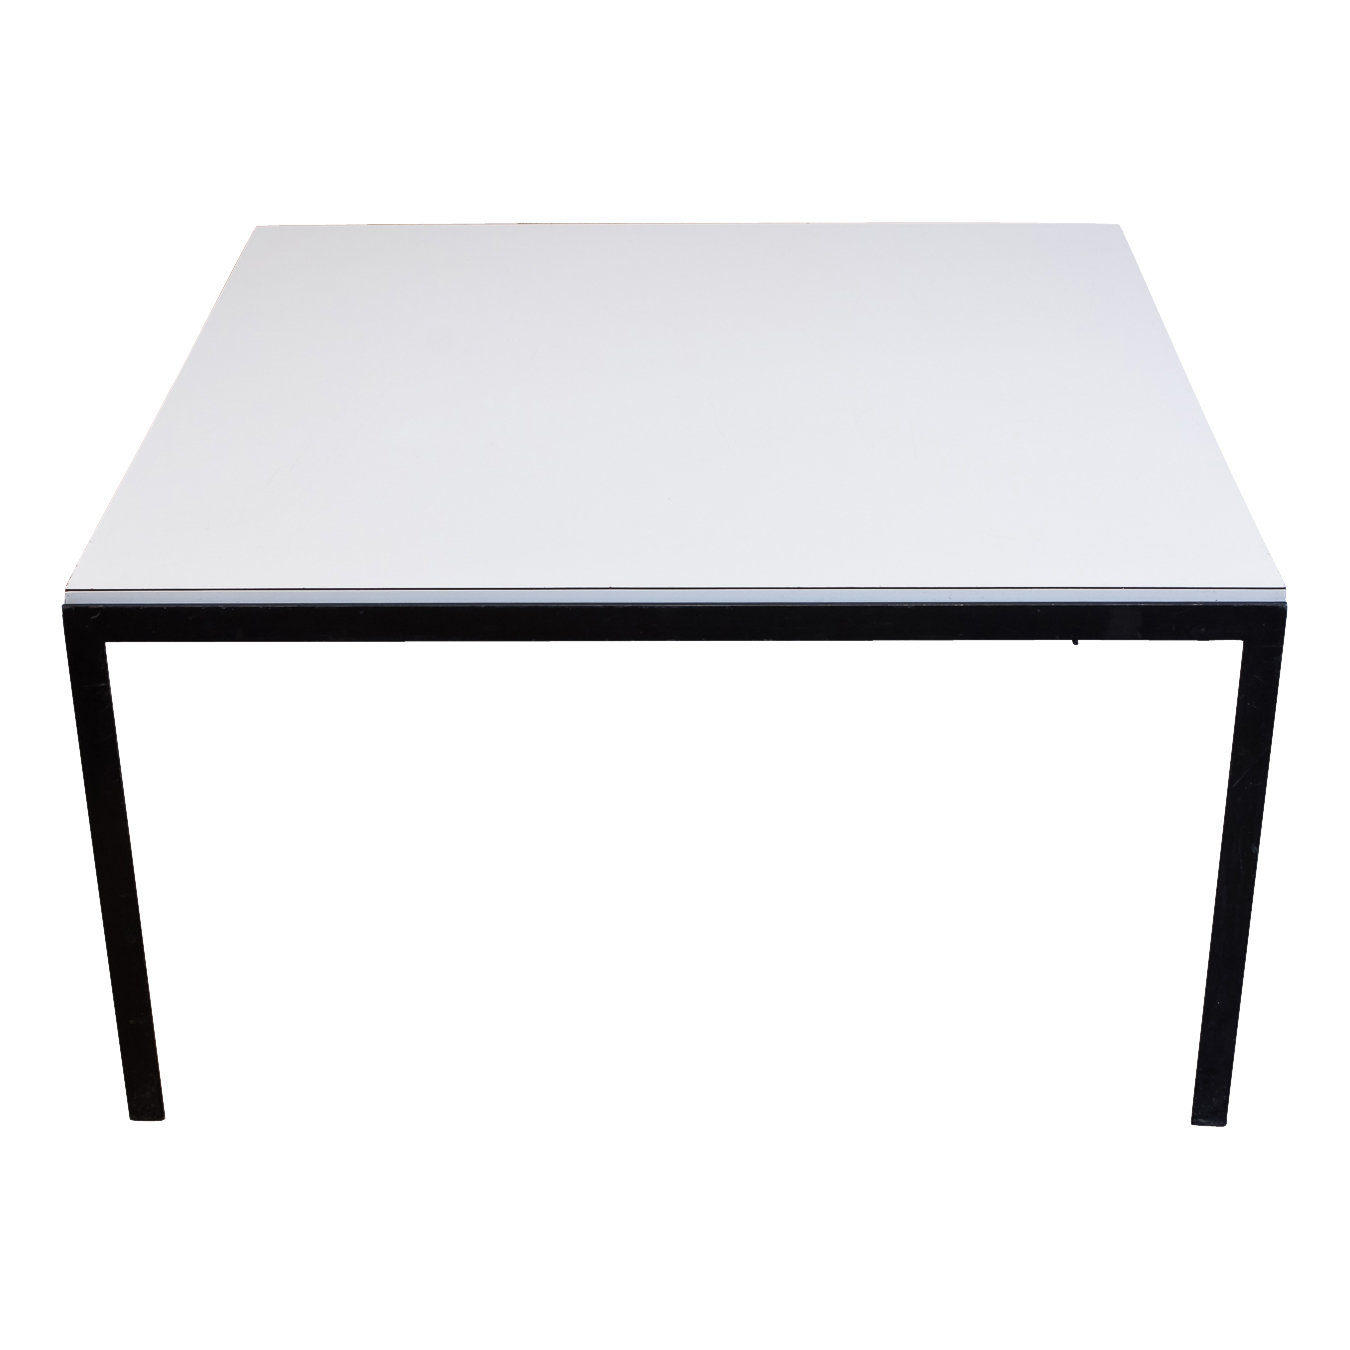 Knoll Square T Angle Coffee Table With White Formica Top